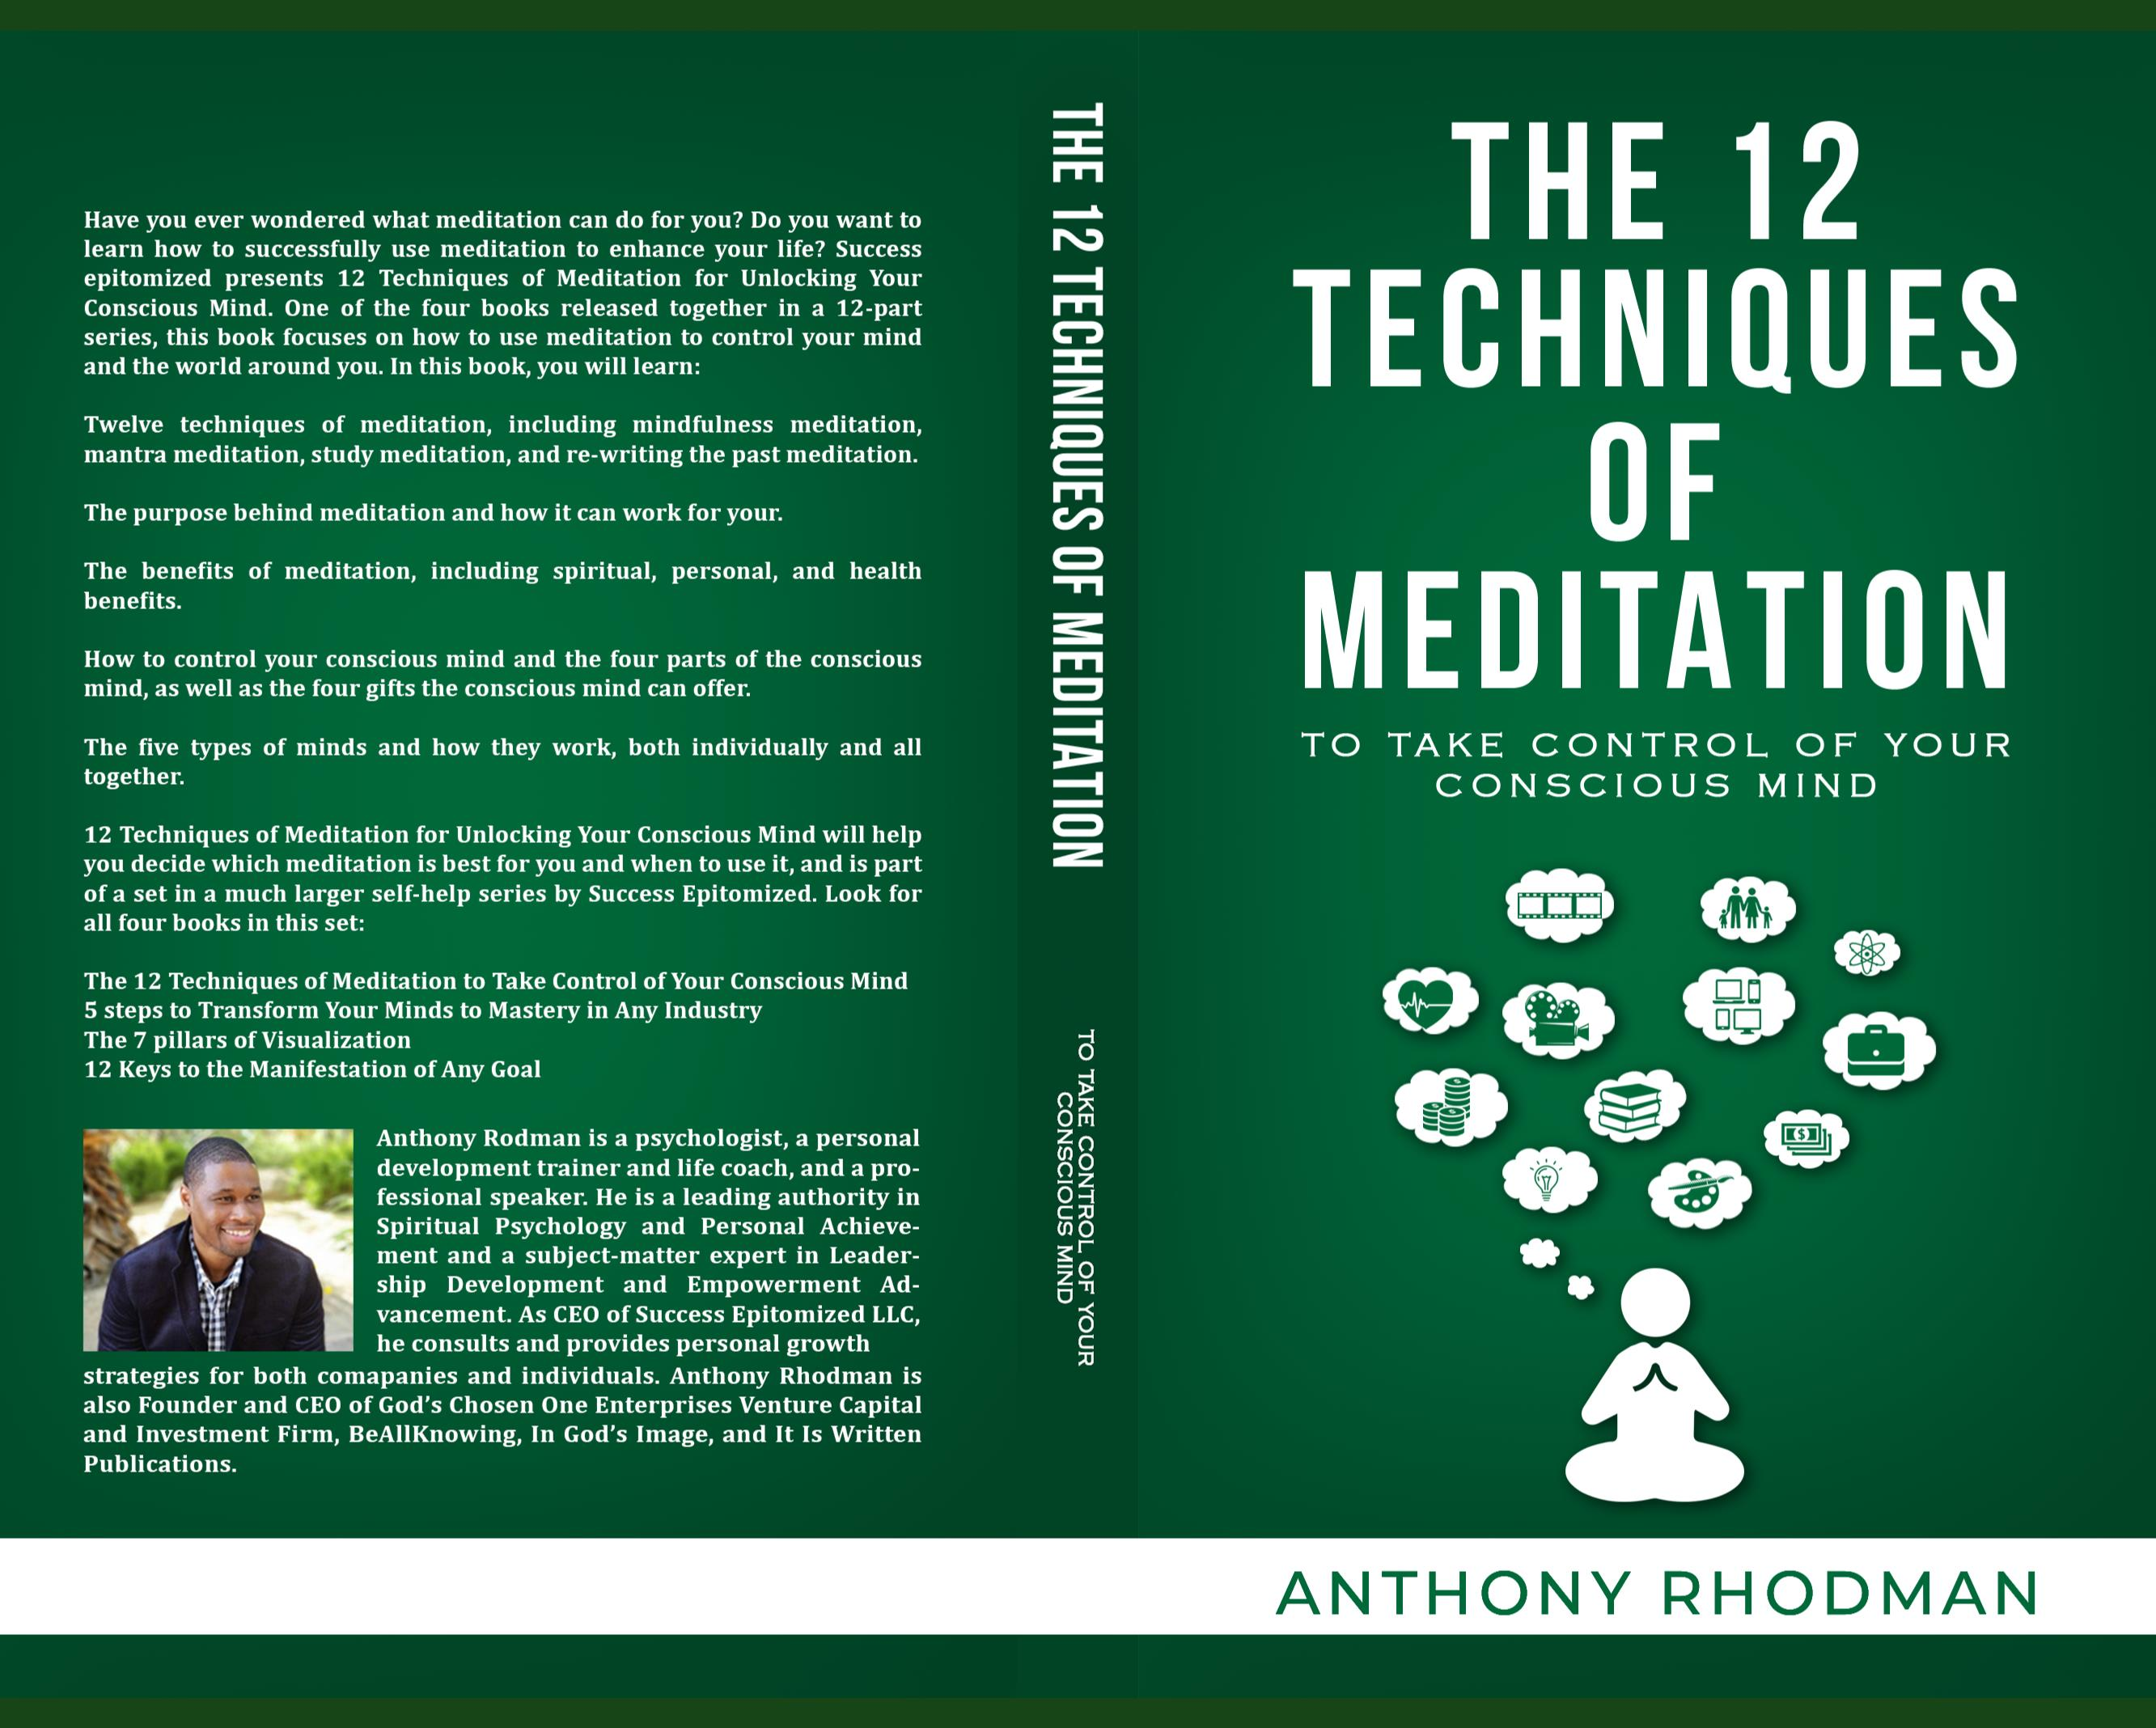 The  12  Techniques of  Meditation To Take Control of Your Conscious Mind cover image